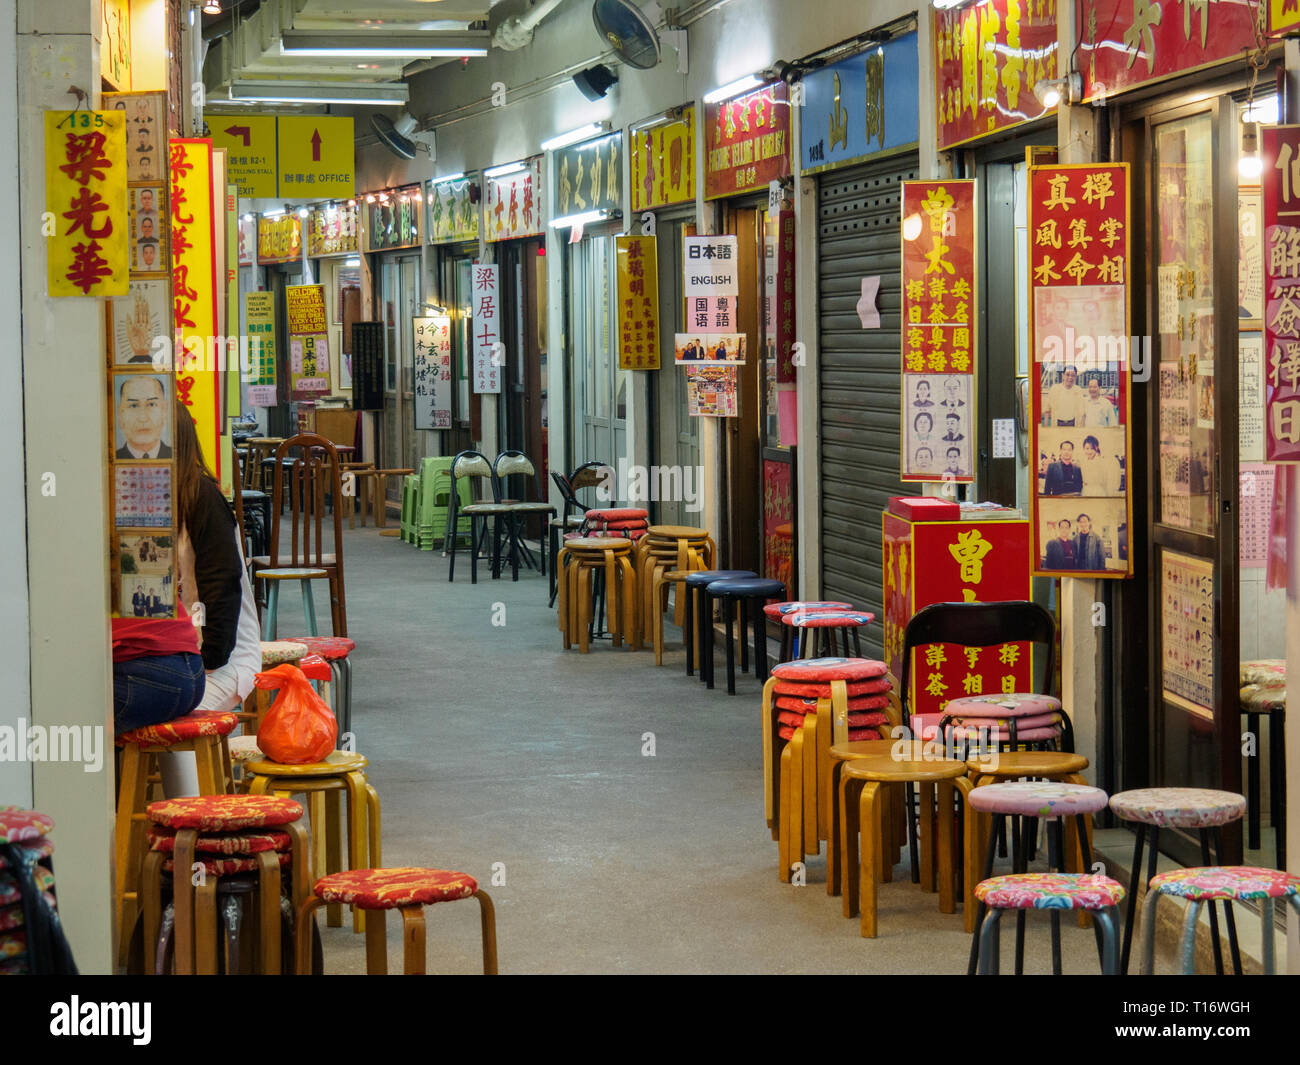 Kowloon, Hong Kong - November 03, 2017: At the Wong Tai Sin Fortune-Count and Oblation Arcade in Hong Kong, people can predict their future by using t - Stock Image